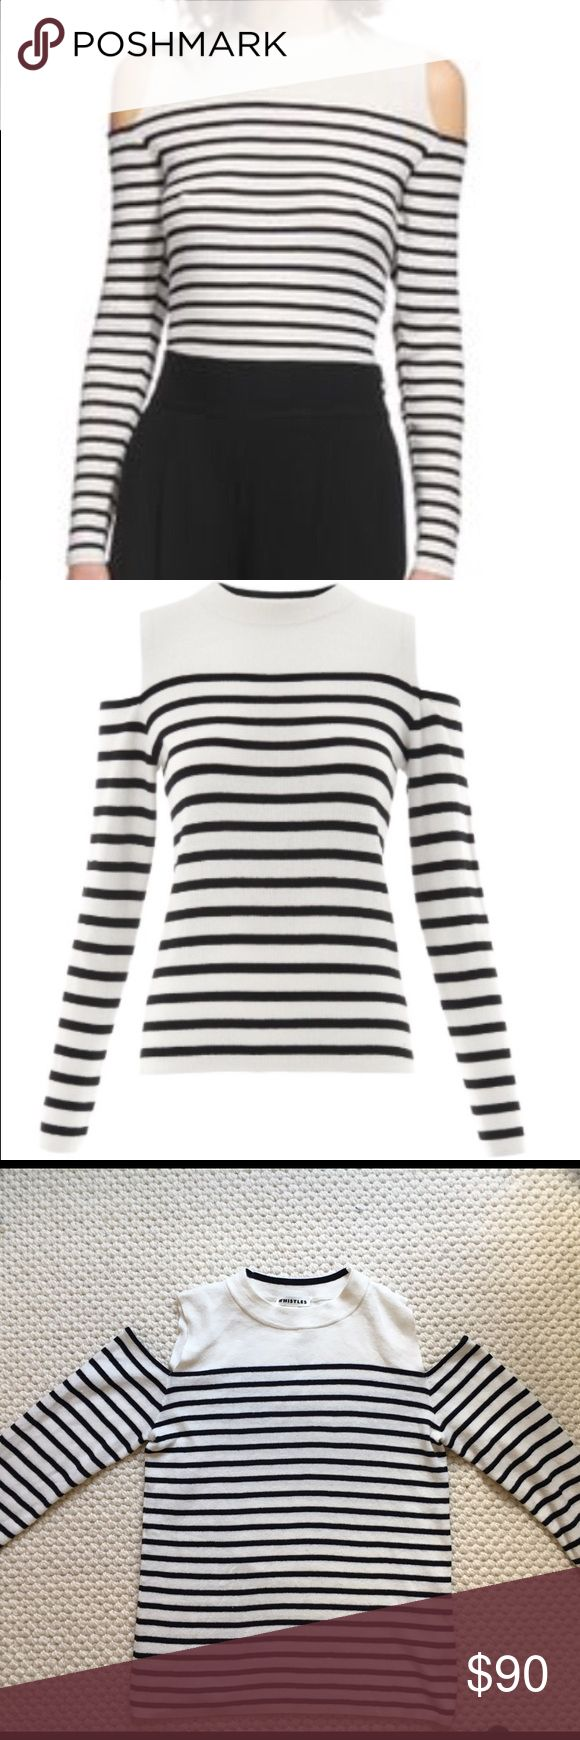 NEW WHISTLES COLD SHOULDER STRIPED KNIT TOP $180 NEW WHISTLES COLD SHOULDER STRIPED KNIT SWEATER TOP BLACK WHITE S SOLD OUT $180 BRAND NEW WITHOUT TAGS COMPLETELY SOLD OUT ONLINE AND IN STORES This fine knit features on-trend shoulder cut-outs. A slim fit and long sleeves make it a chic and practical choice for evening while the Breton-style stripes are timeless and clean Cut-out shoulders Slim fit Length: (from shoulder to hem): 23 in Size Small Black & White Composition: 60% Cotton, 40%…